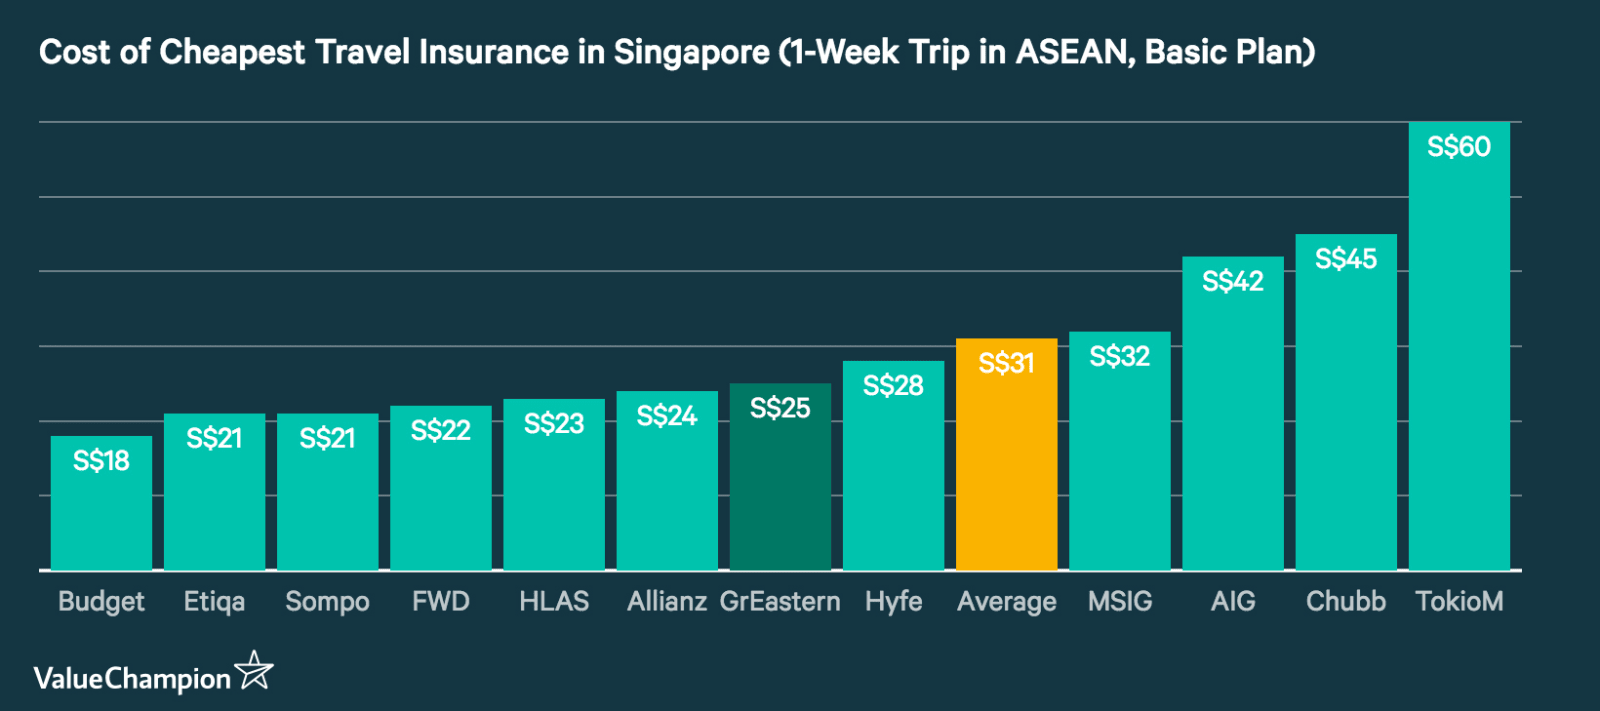 A graph comparing cost of travel insurance in Singapore from all major insurers in the country, assuming a single-trip policy for destinations in ASEAN